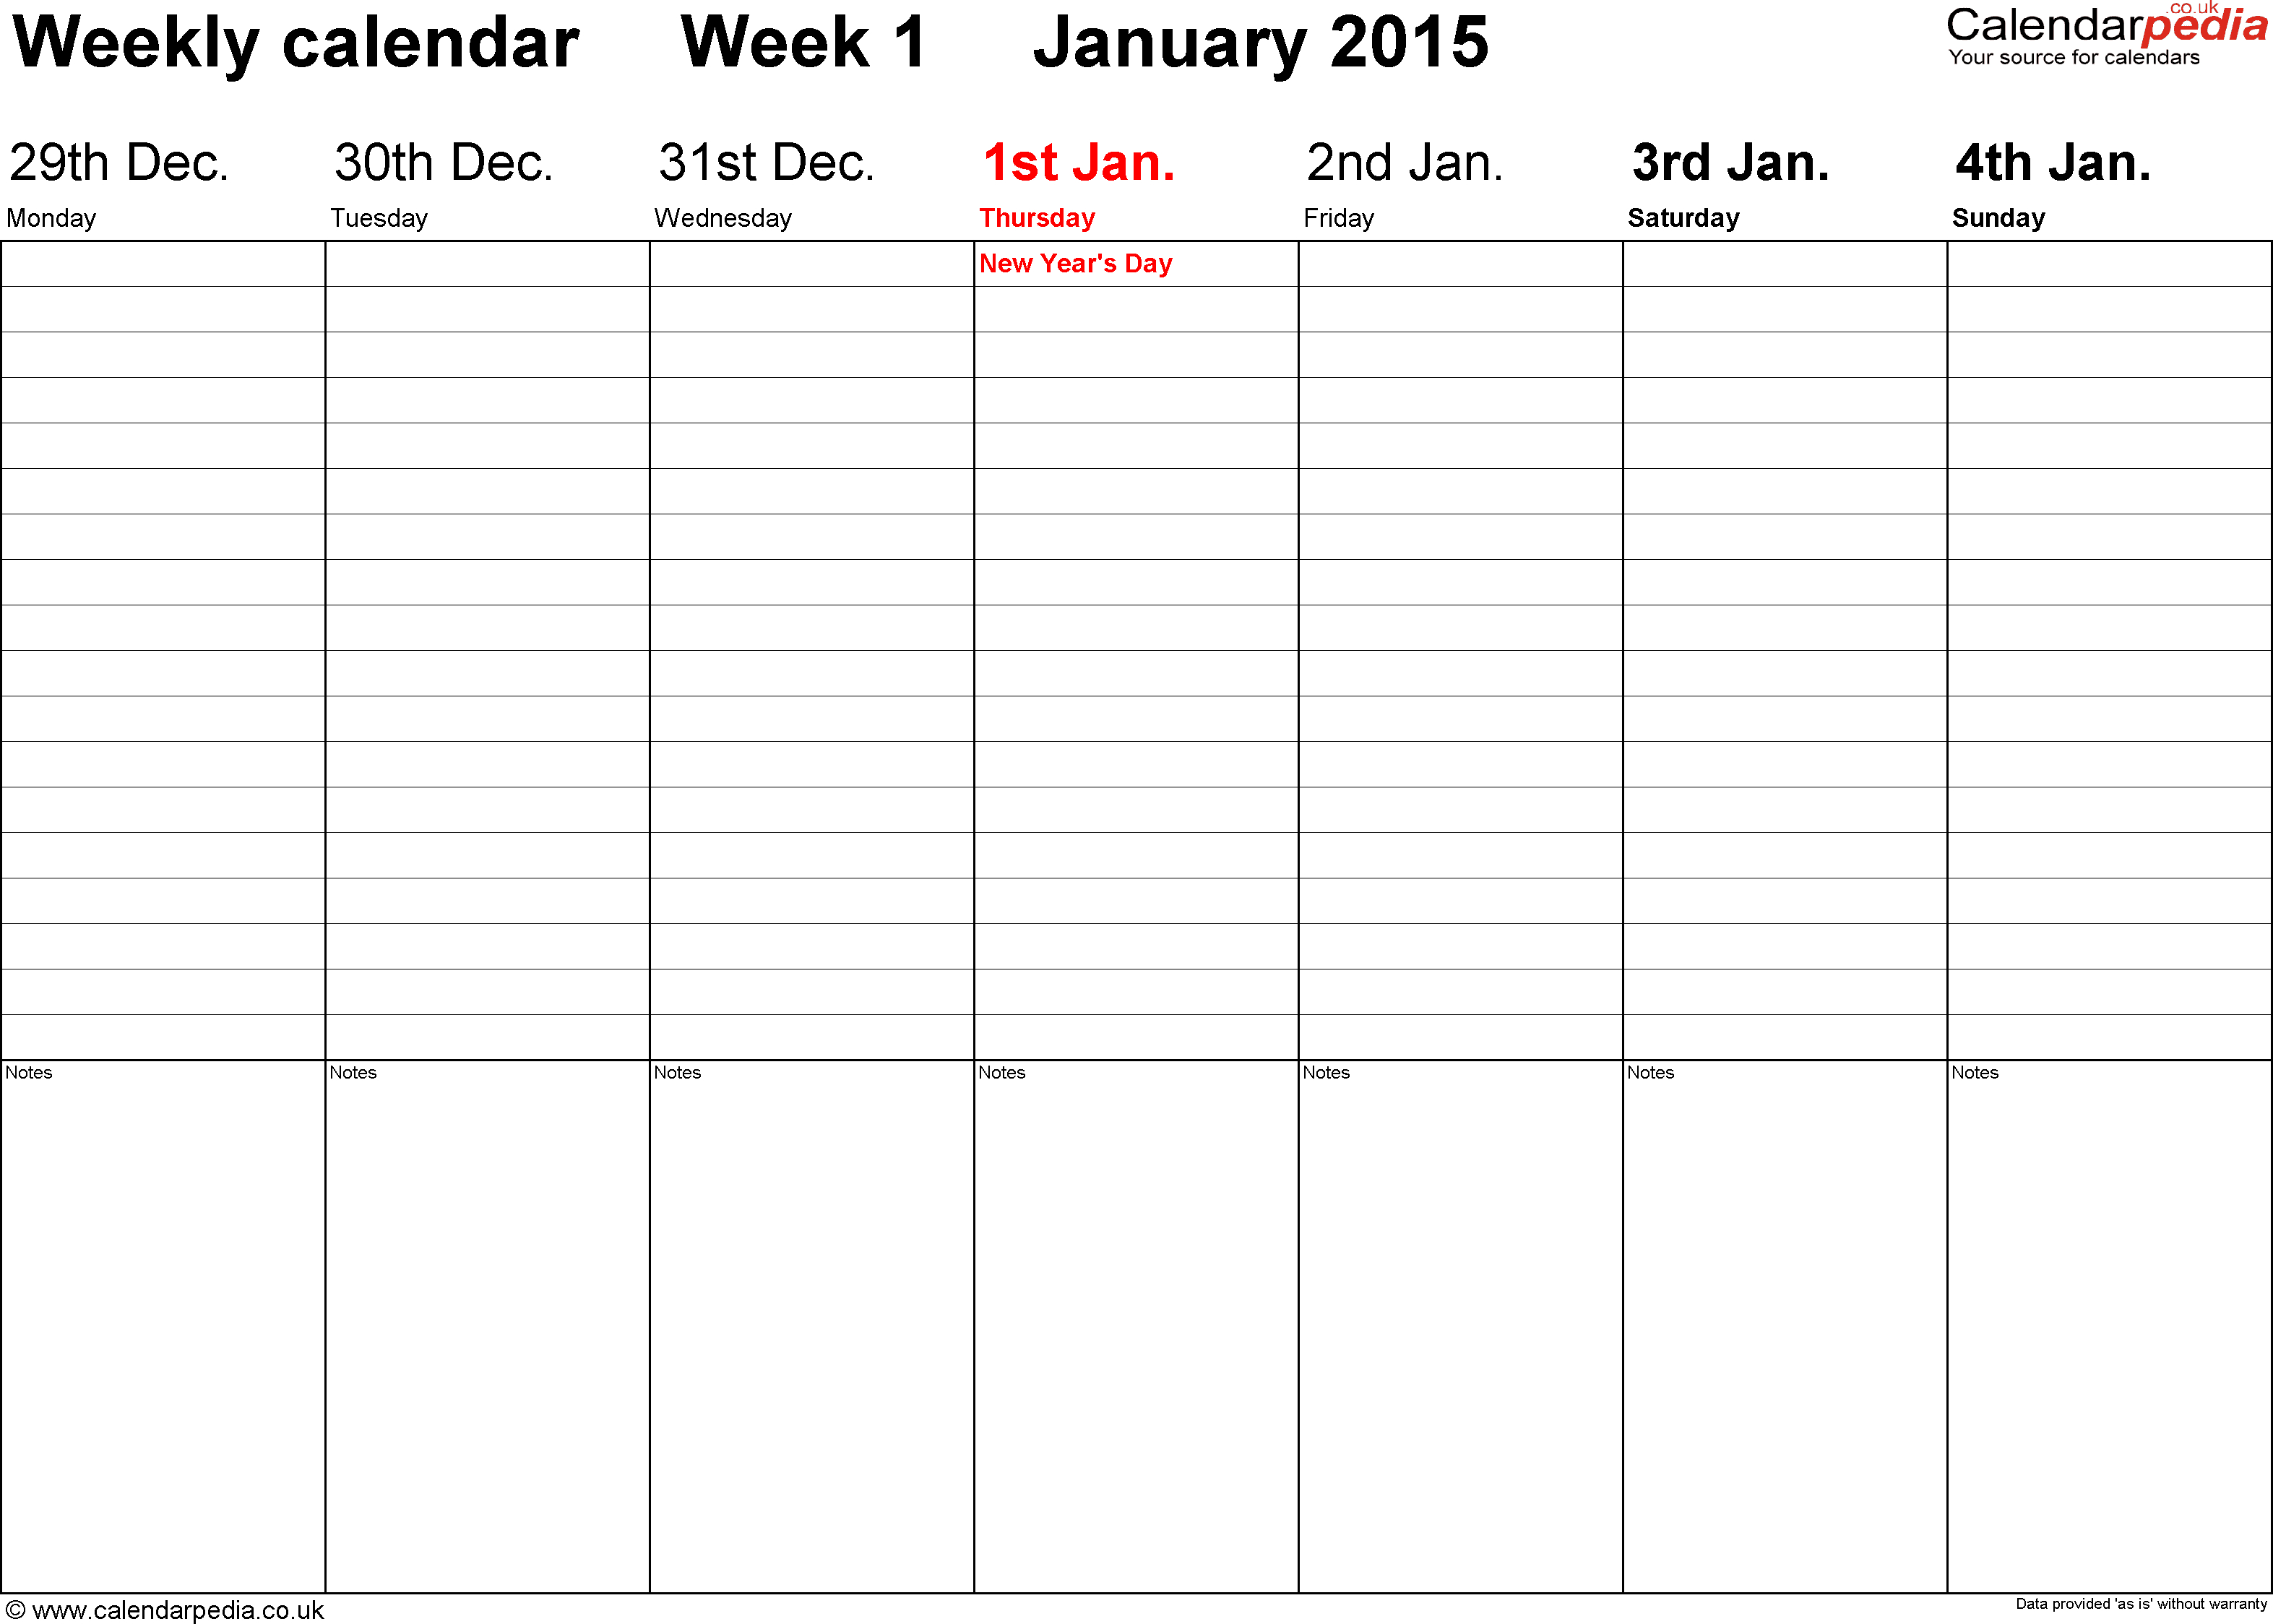 Weekly Calendar Template 2015 - Free Download